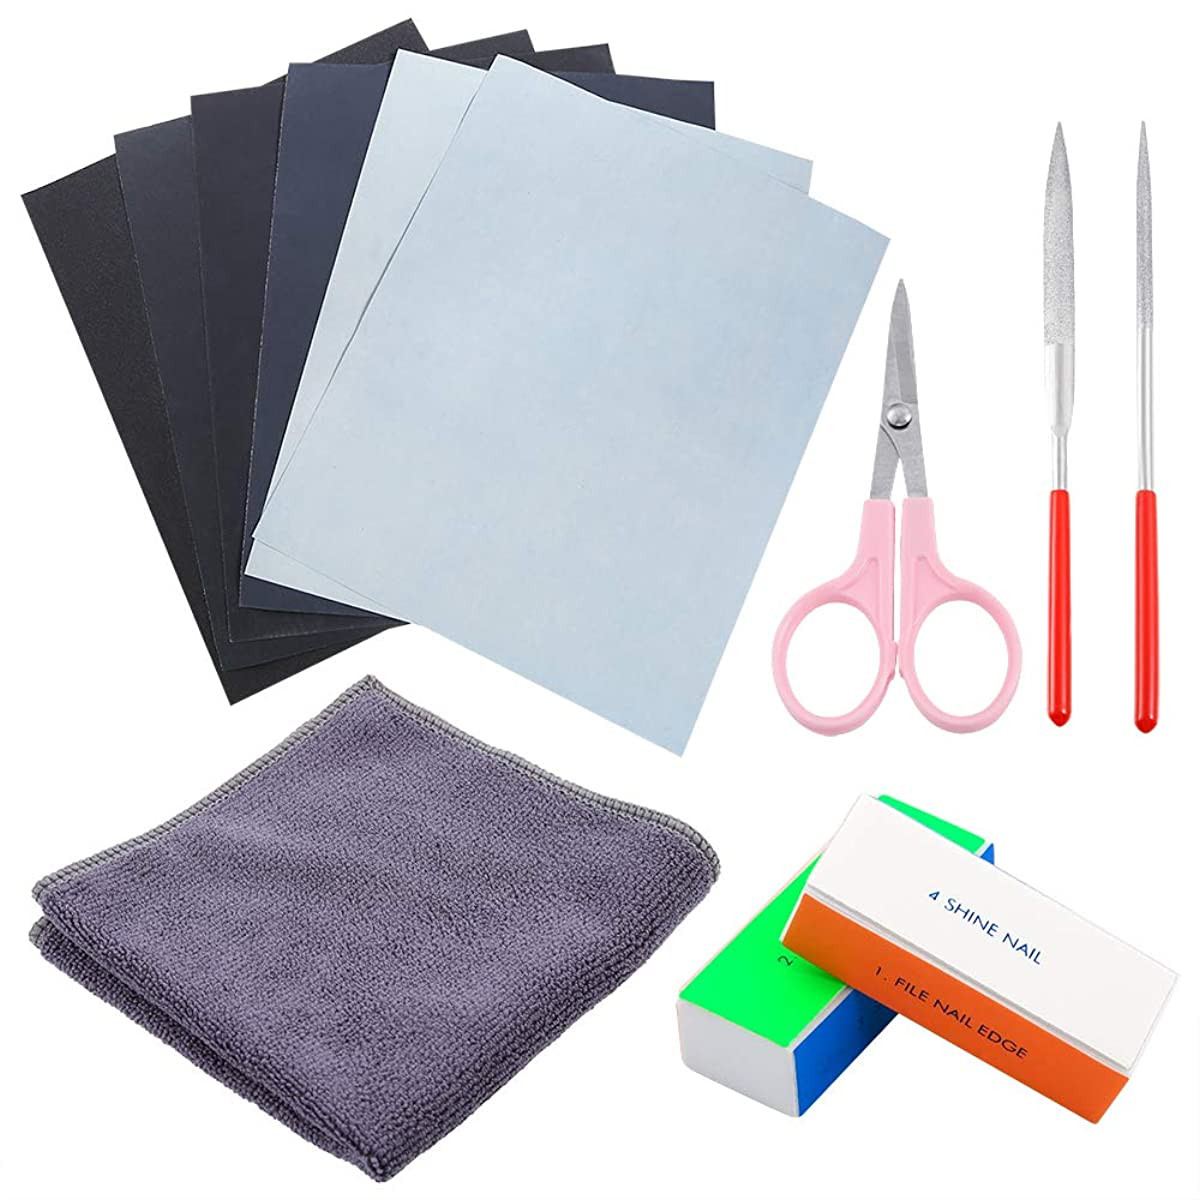 Sntieecr 12 Pieces Resin Casting Molds Tools Set, Include Sand Papers, Polishing Blocks, Polishing Cloth, Round File, Semicircular File and Scissors for Polishing Epoxy Resin Jewelry Making Supplies